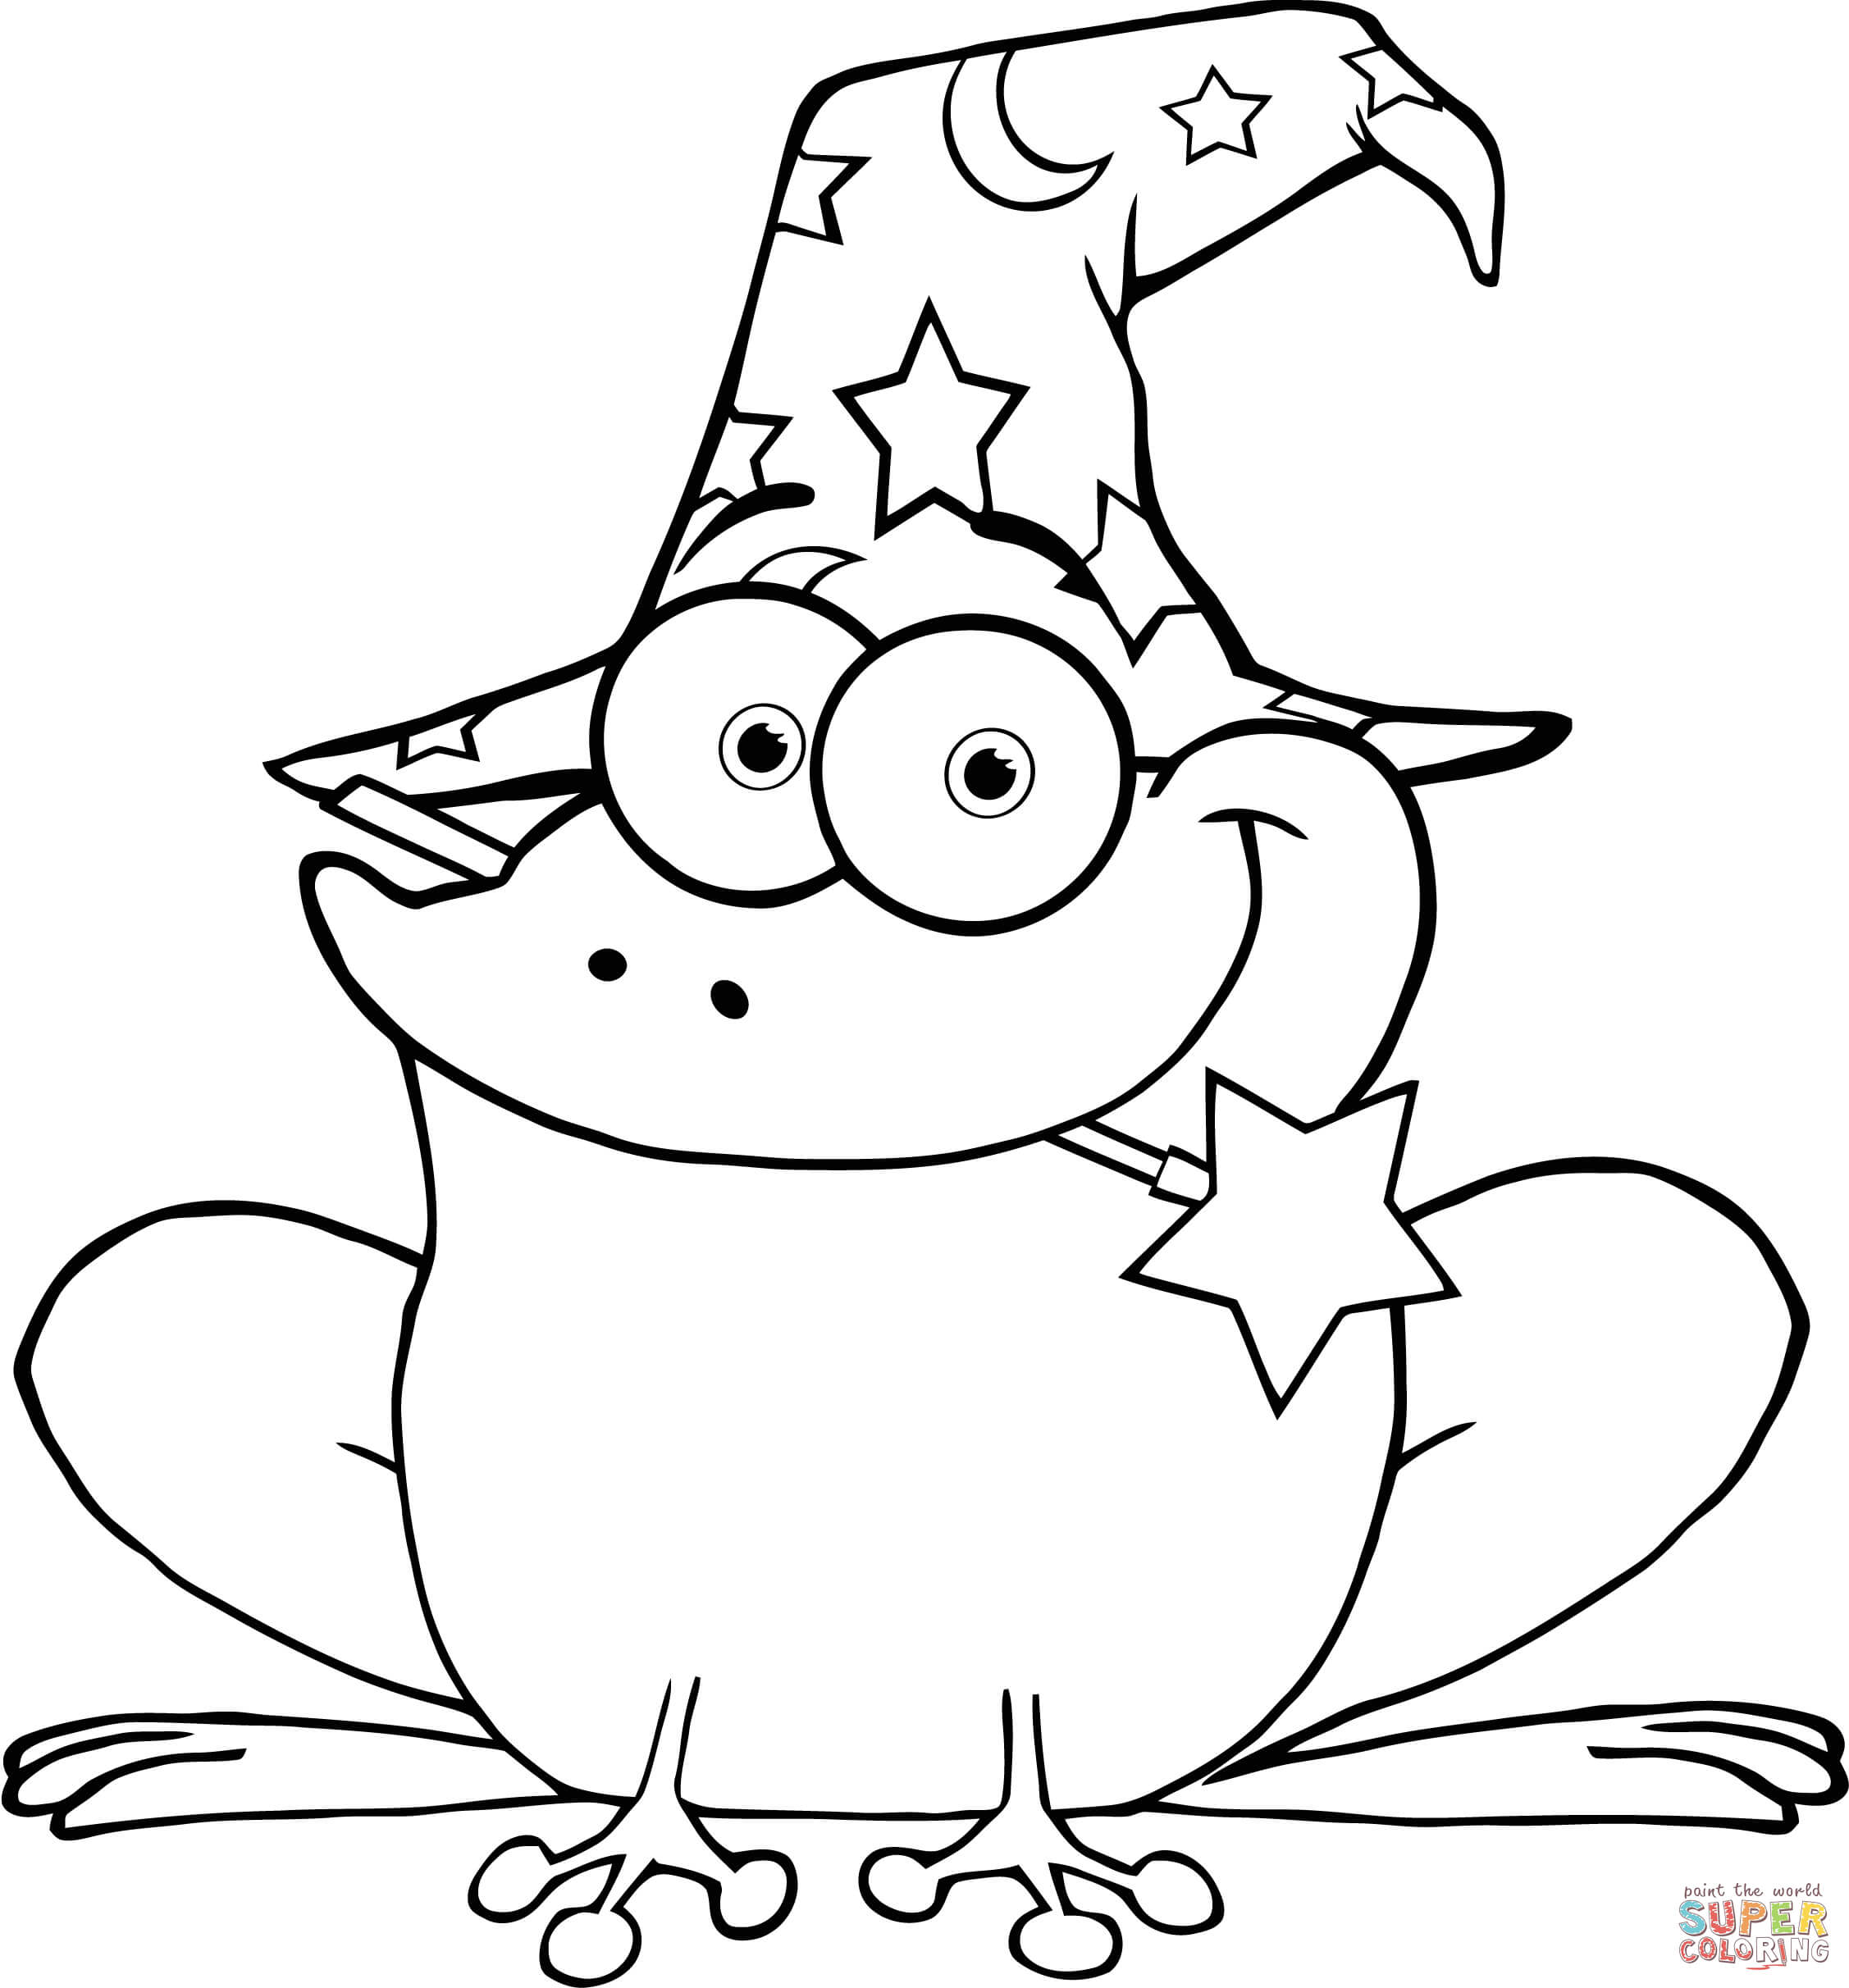 Wizard Frog With A Magic Wand In Mouth Coloring Page